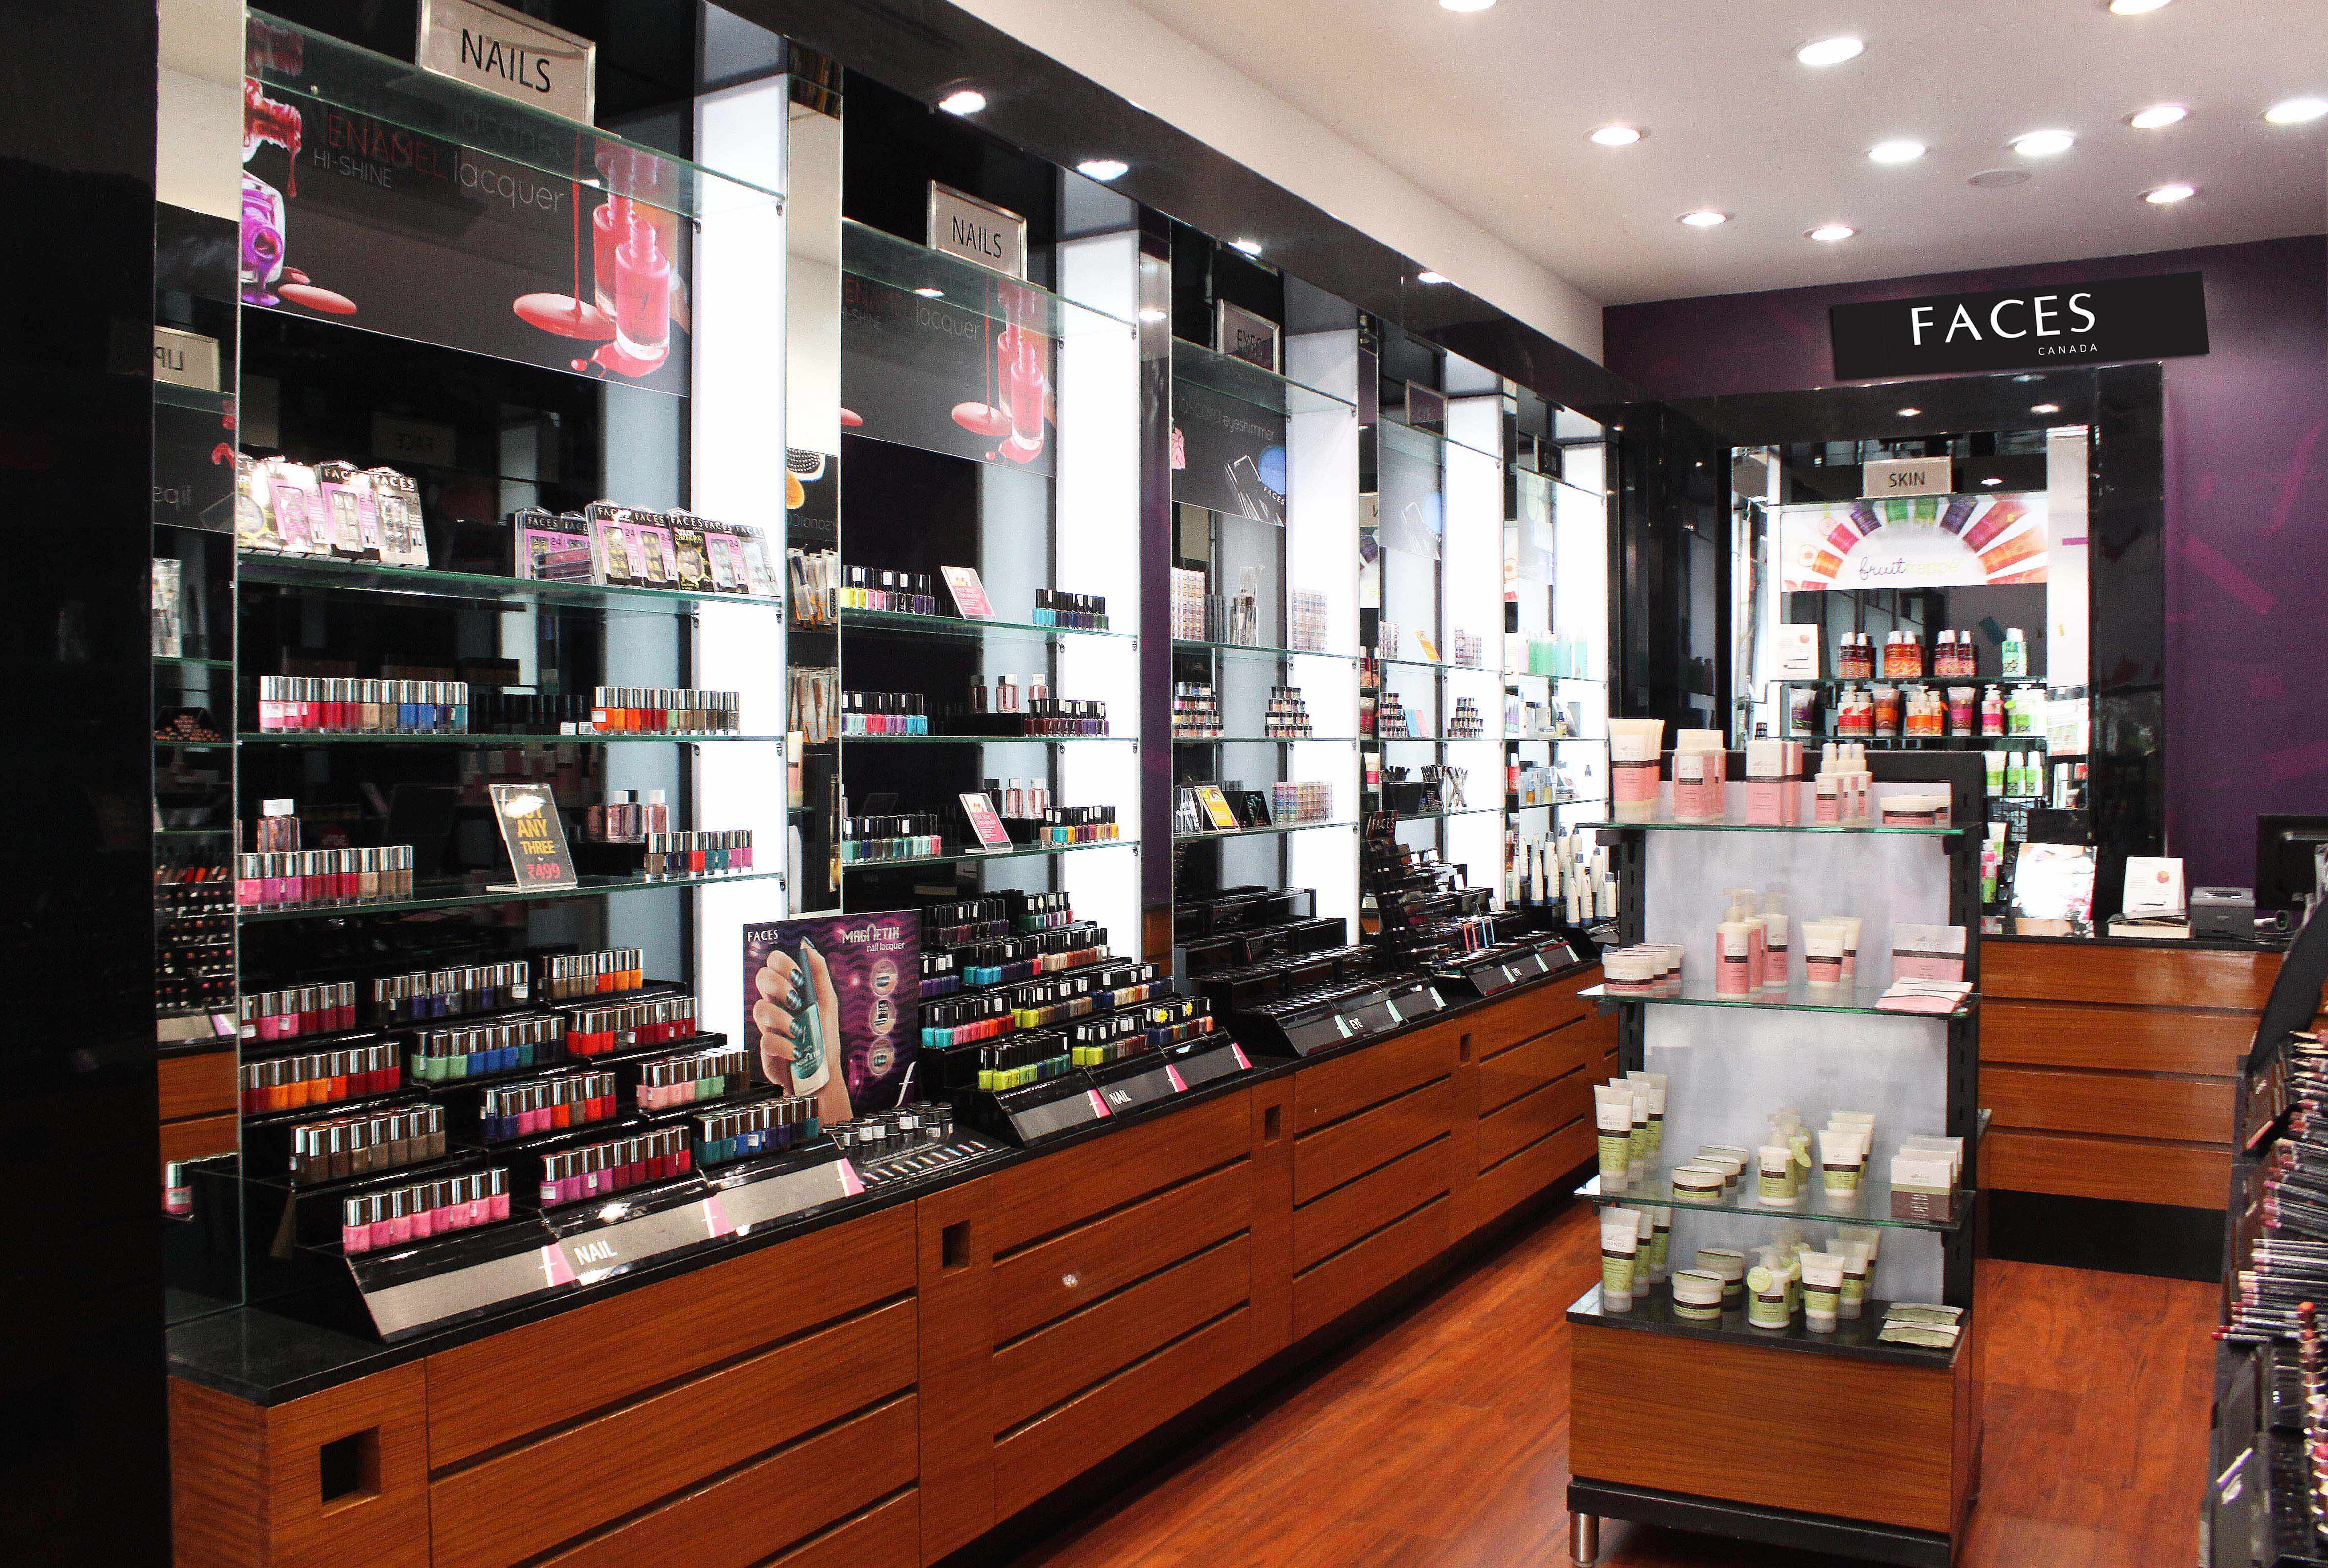 faces cosmetics internationally acclaimed makeup skincare and personal ...